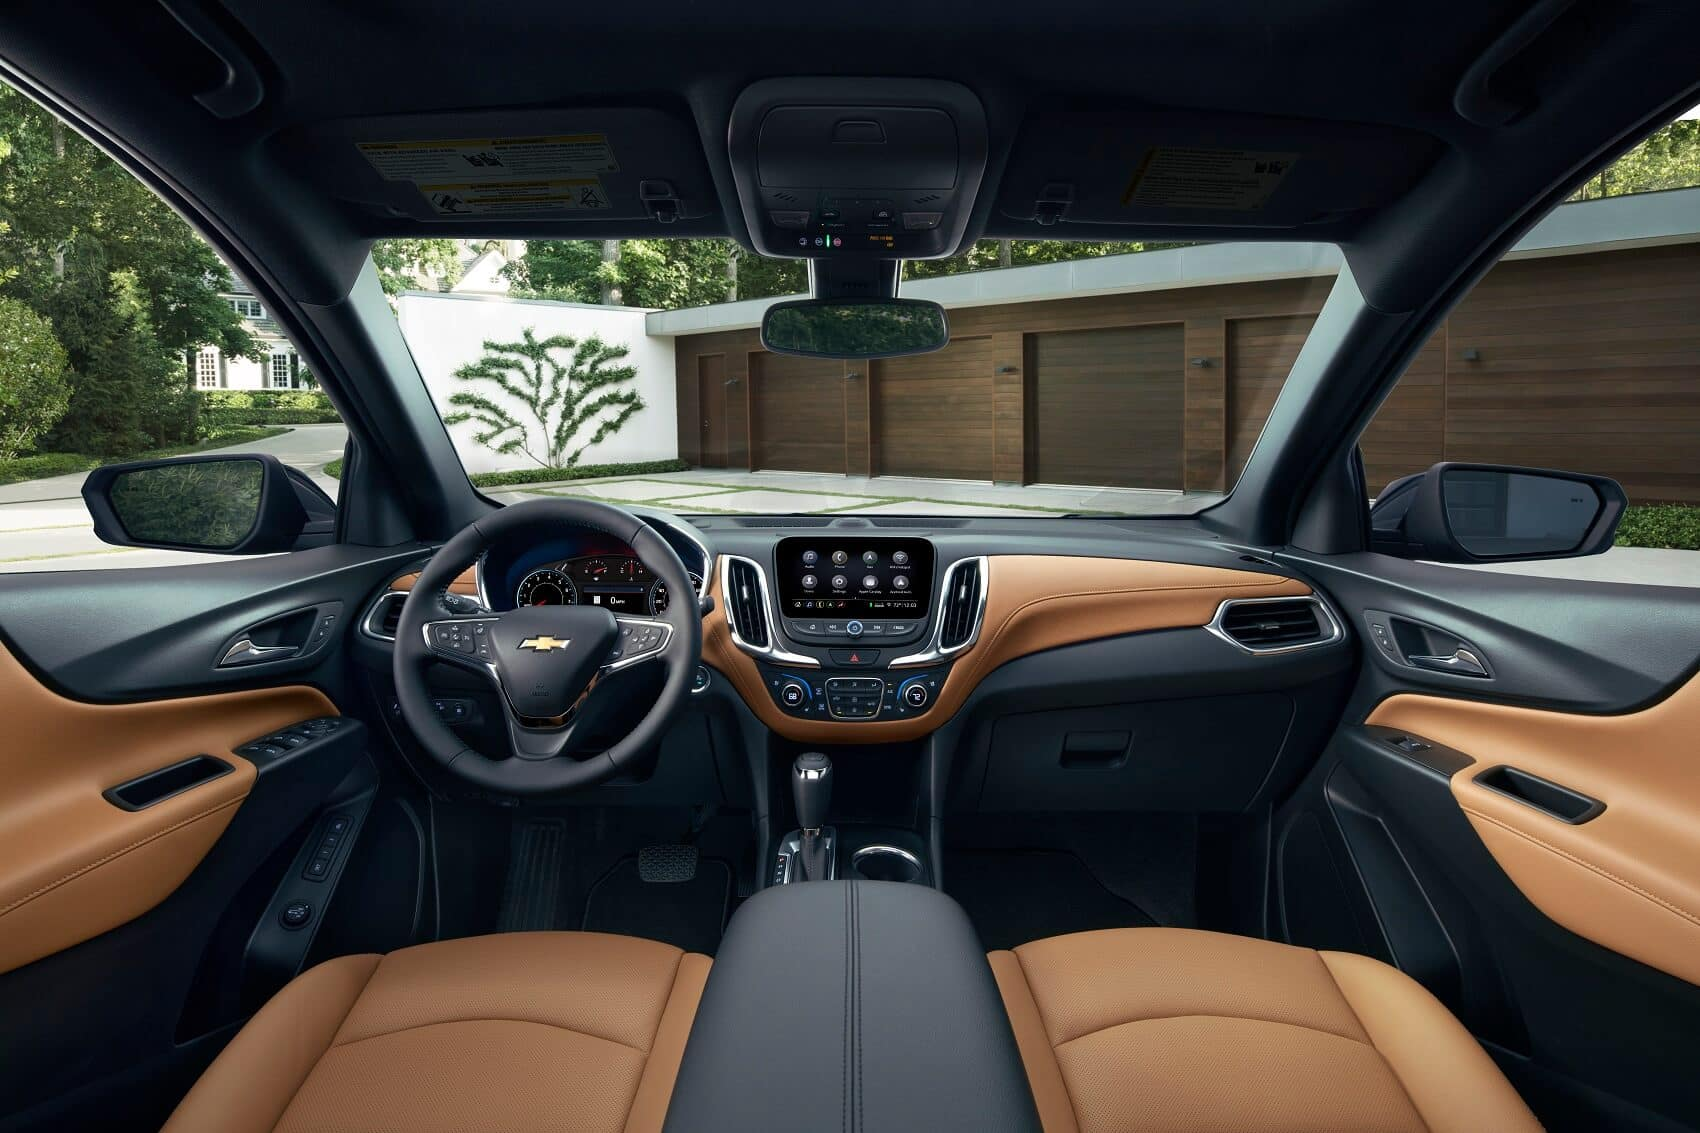 The Chevy Equinox: Features and Specs